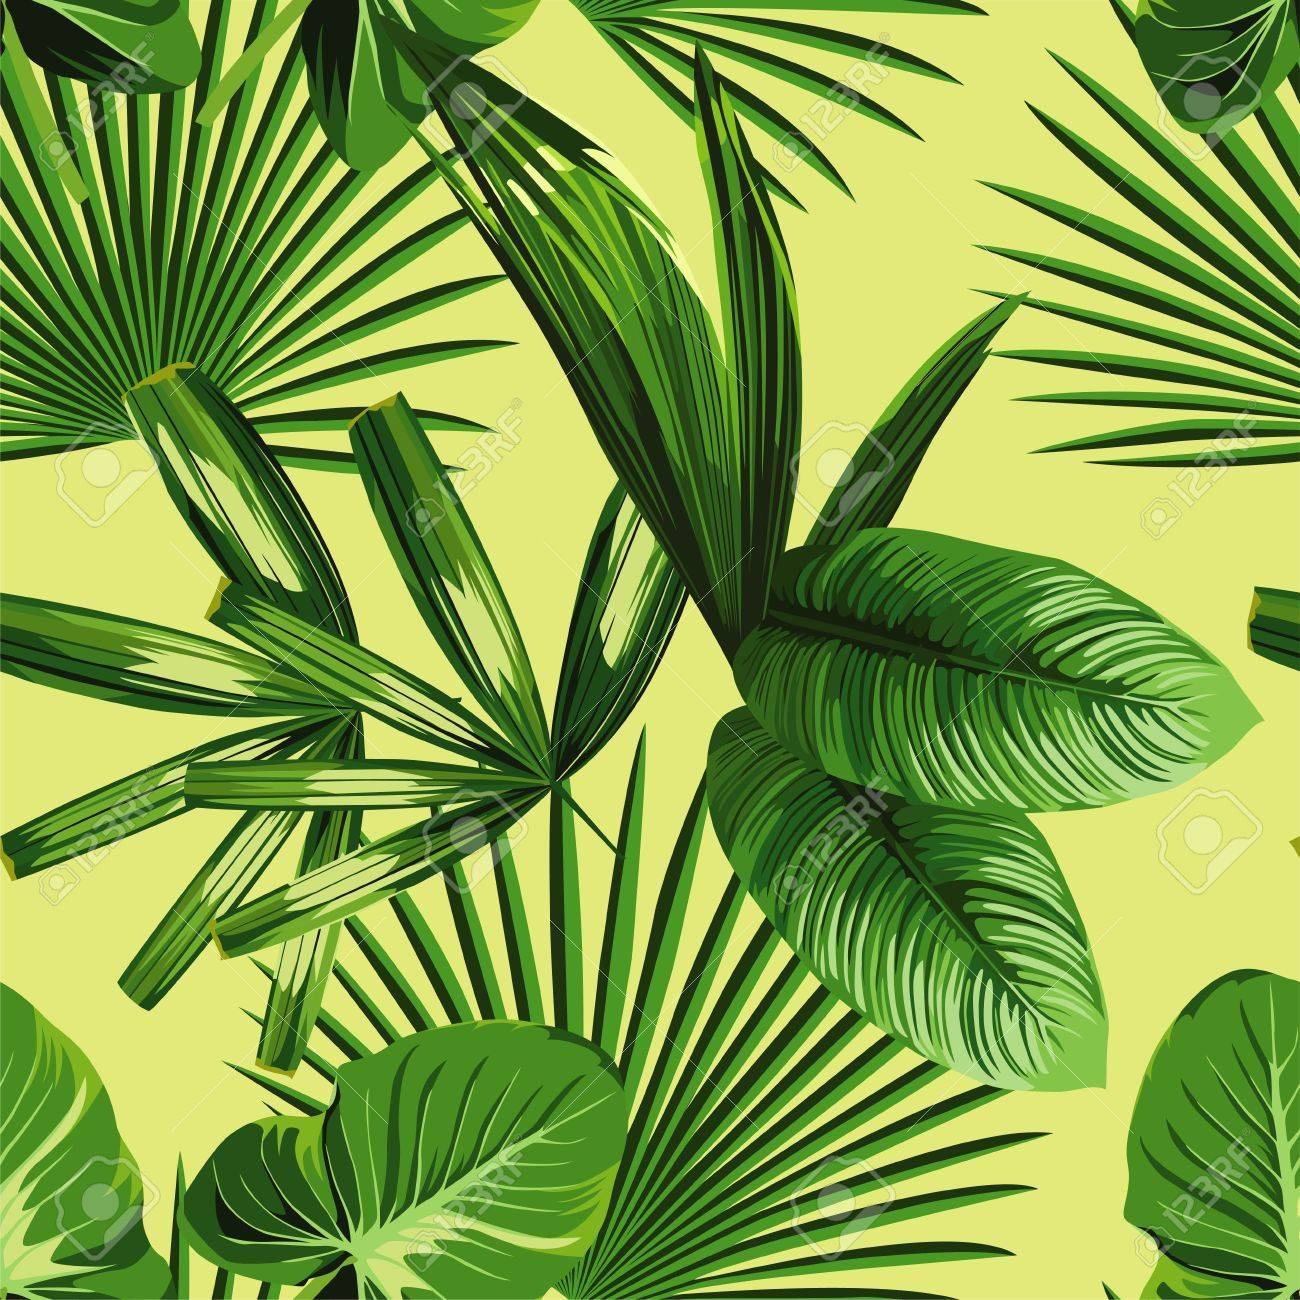 Tropic Print Ete Plante Jungle Exotique Tropical De Feuille De